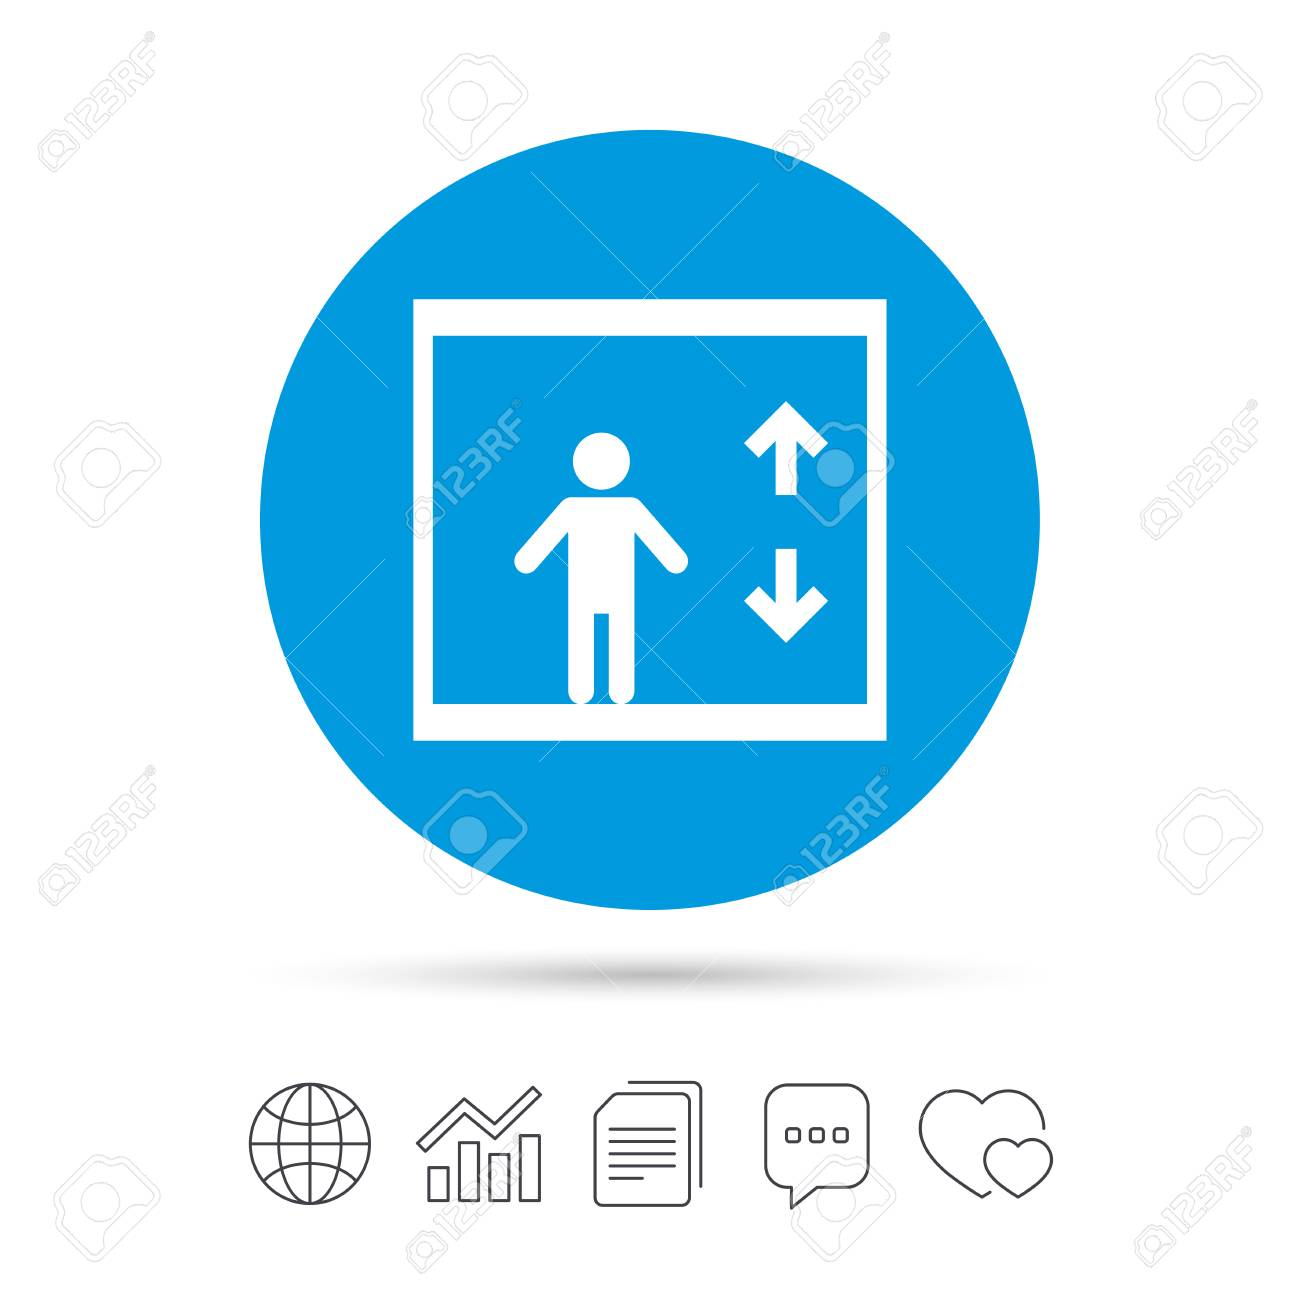 elevator sign icon person symbol with up and down arrows royalty